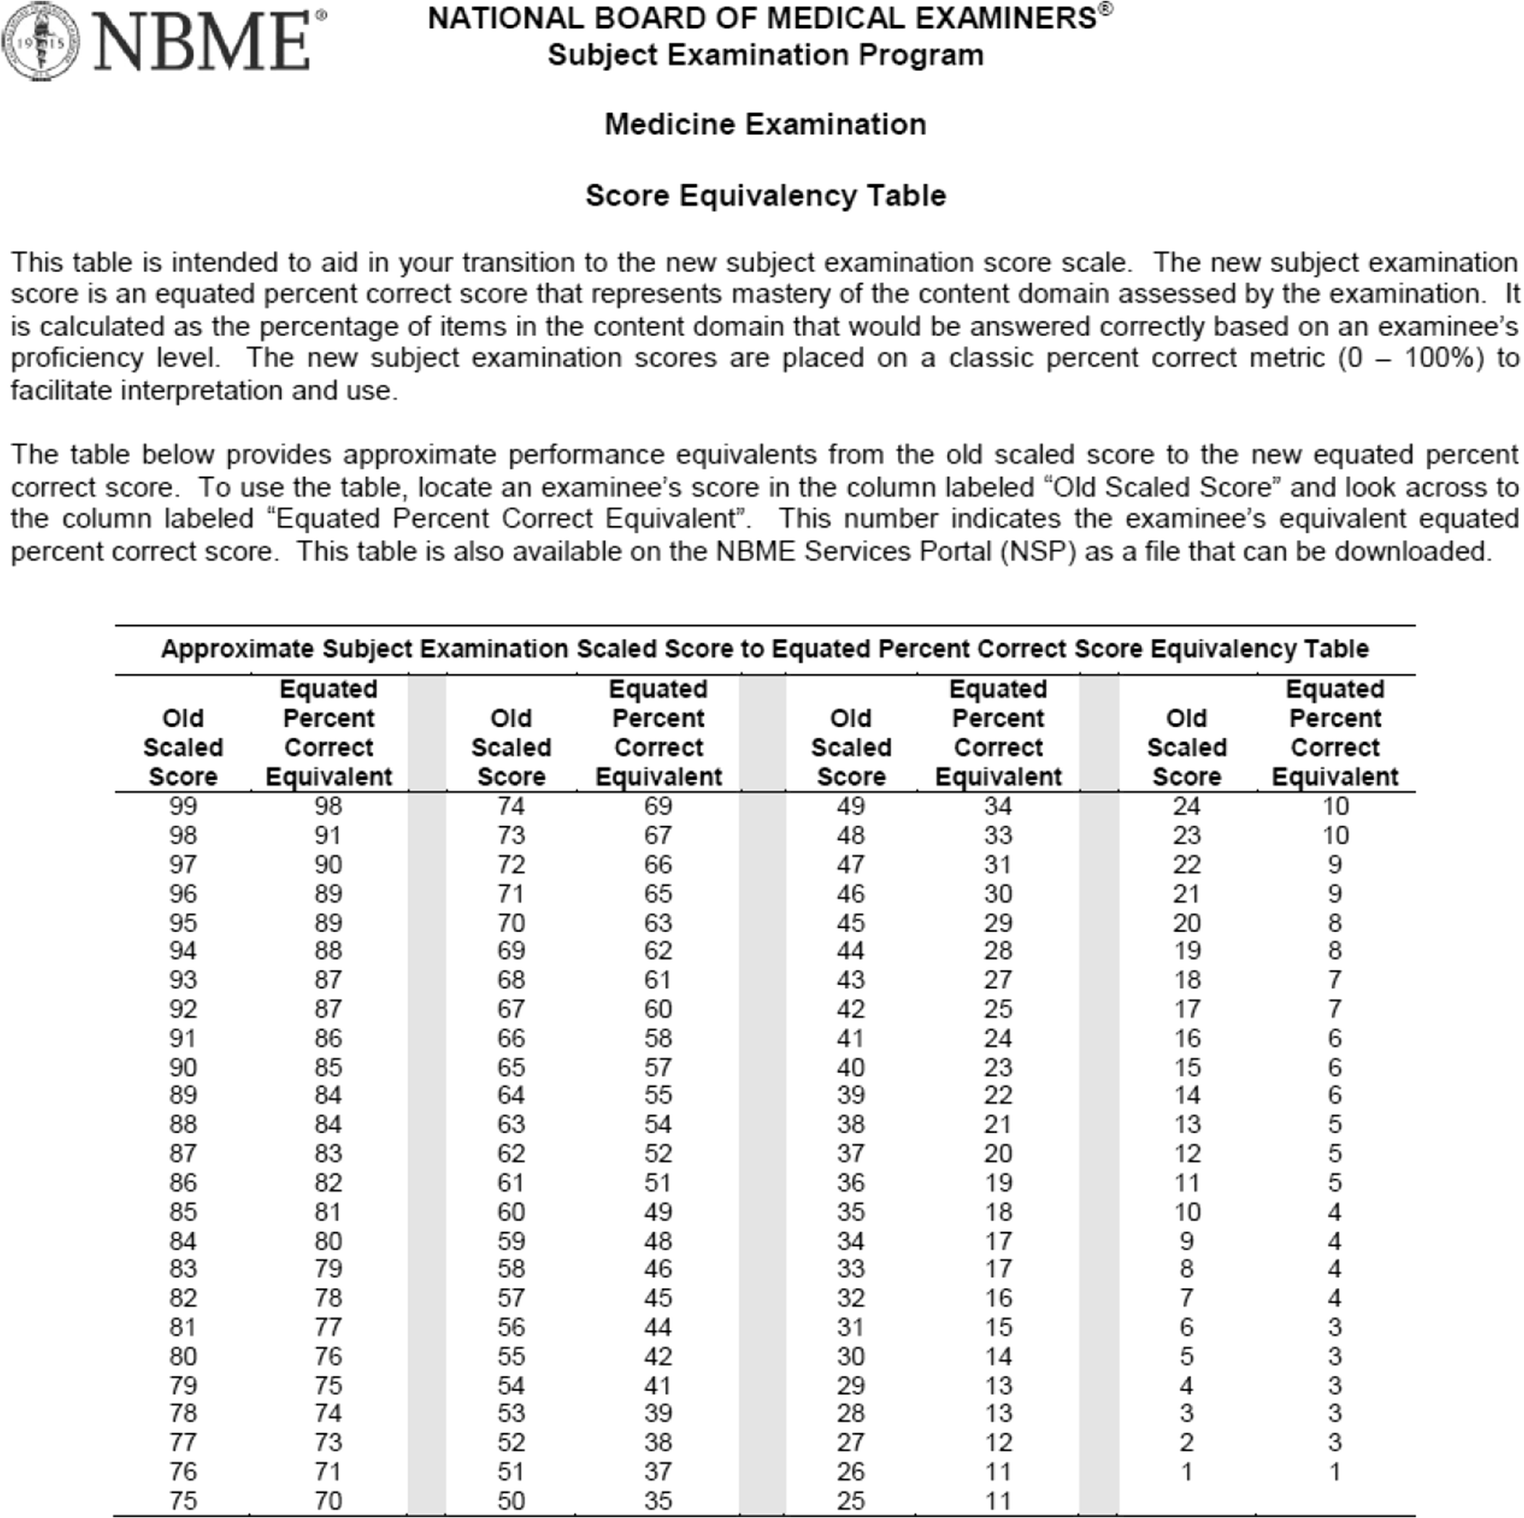 Implementing a New Score Scale for the Clinical Science Subject